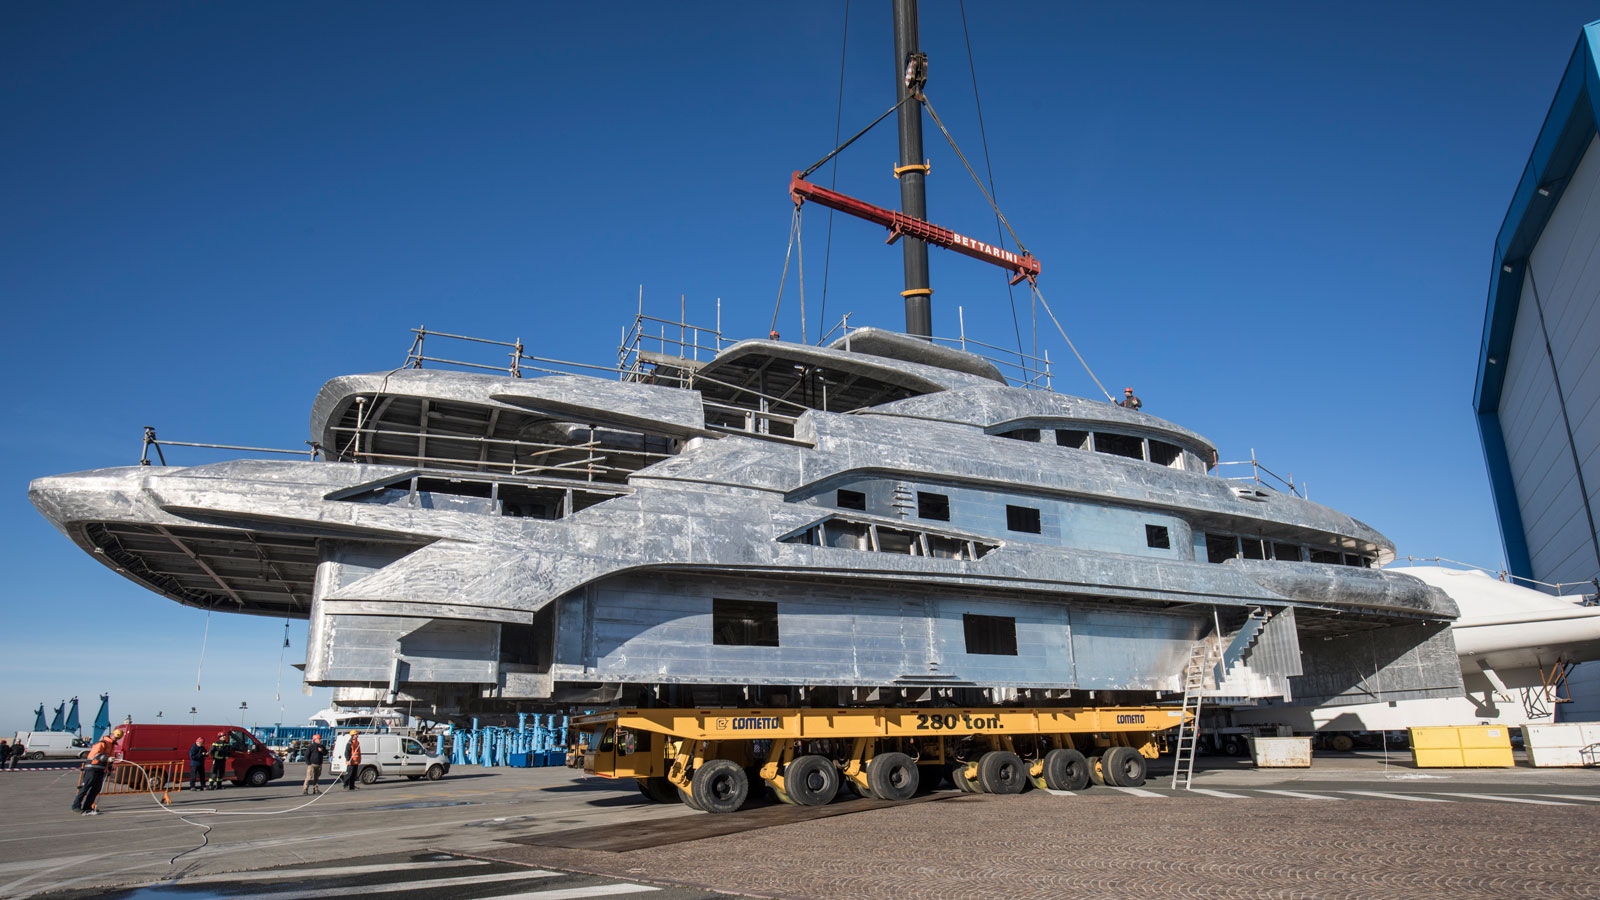 hull-superstructure-joined-benetti-fb274